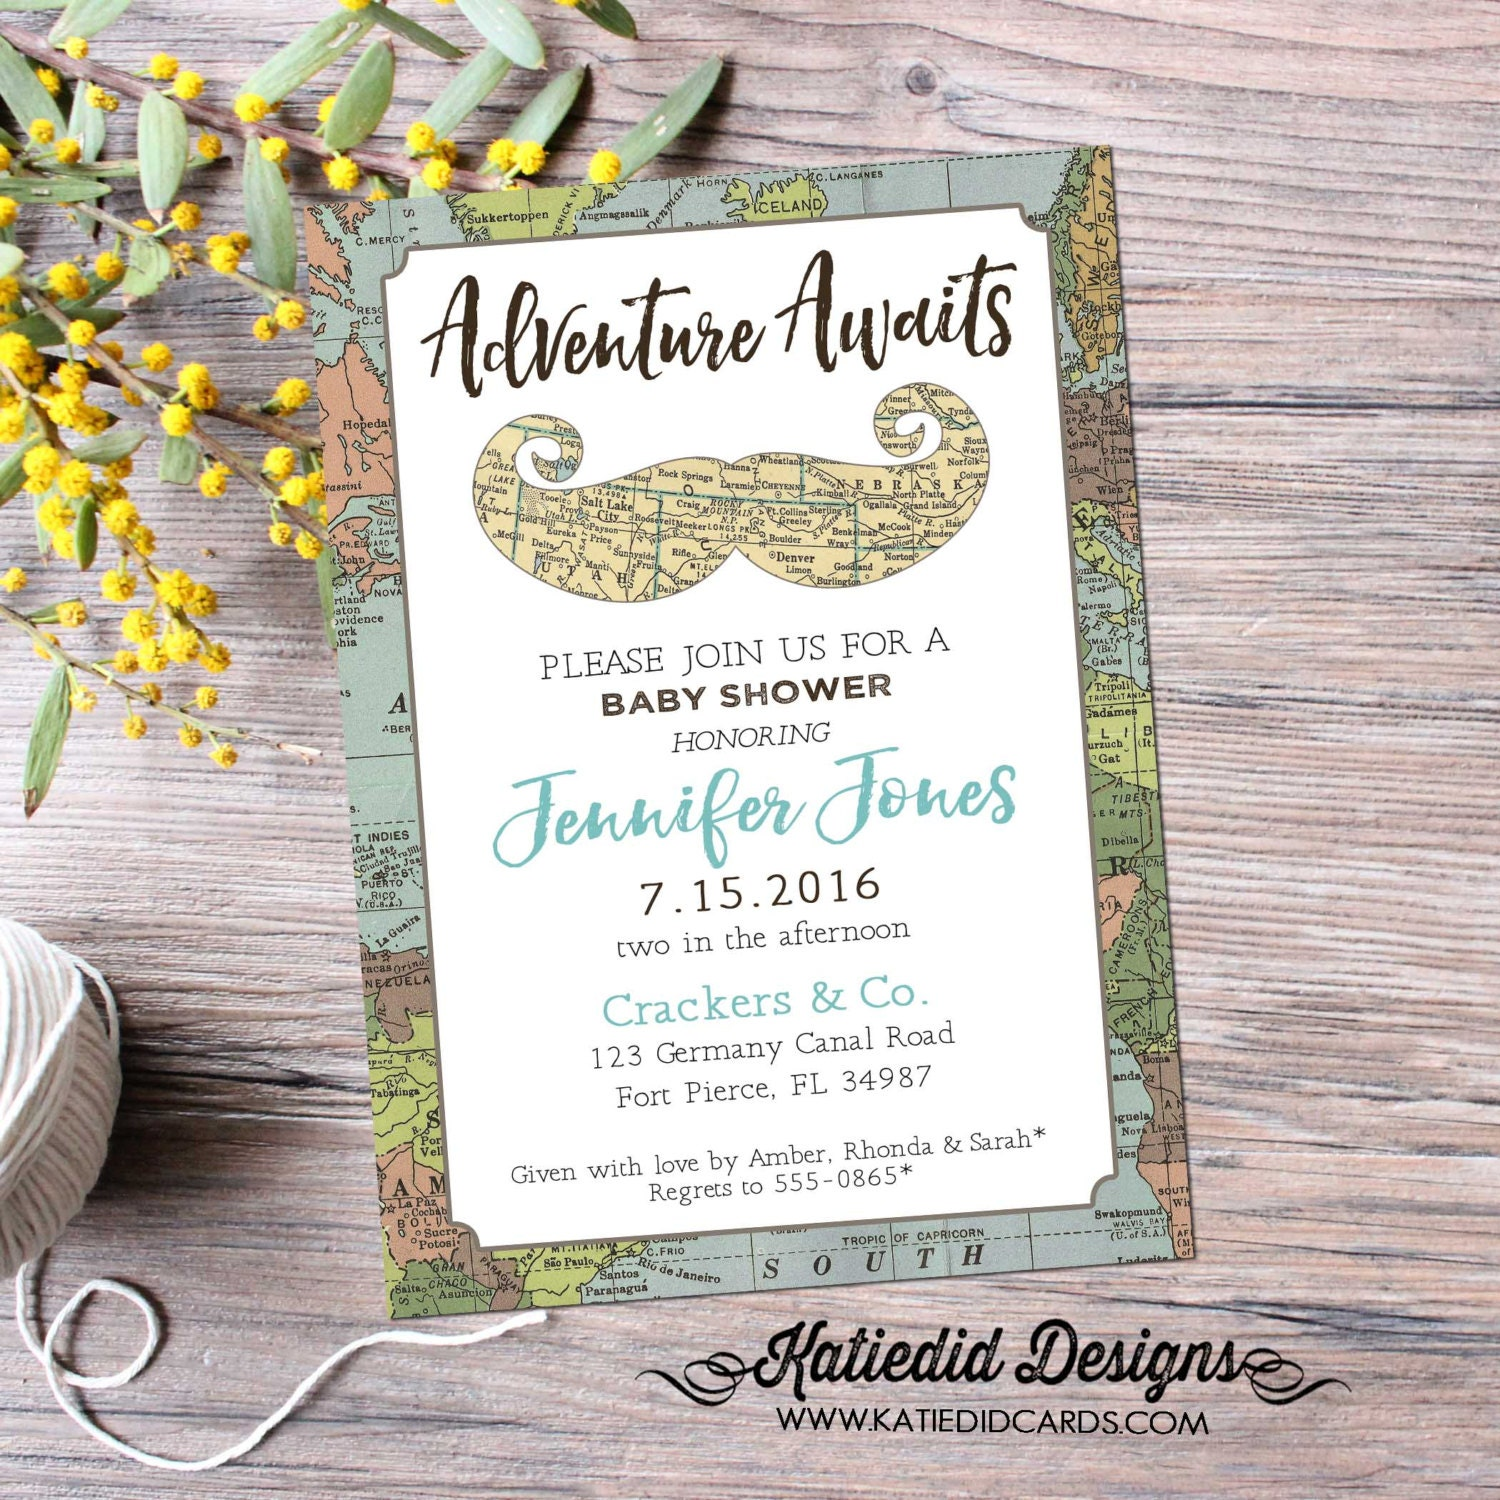 travel party invitations - Kubre.euforic.co